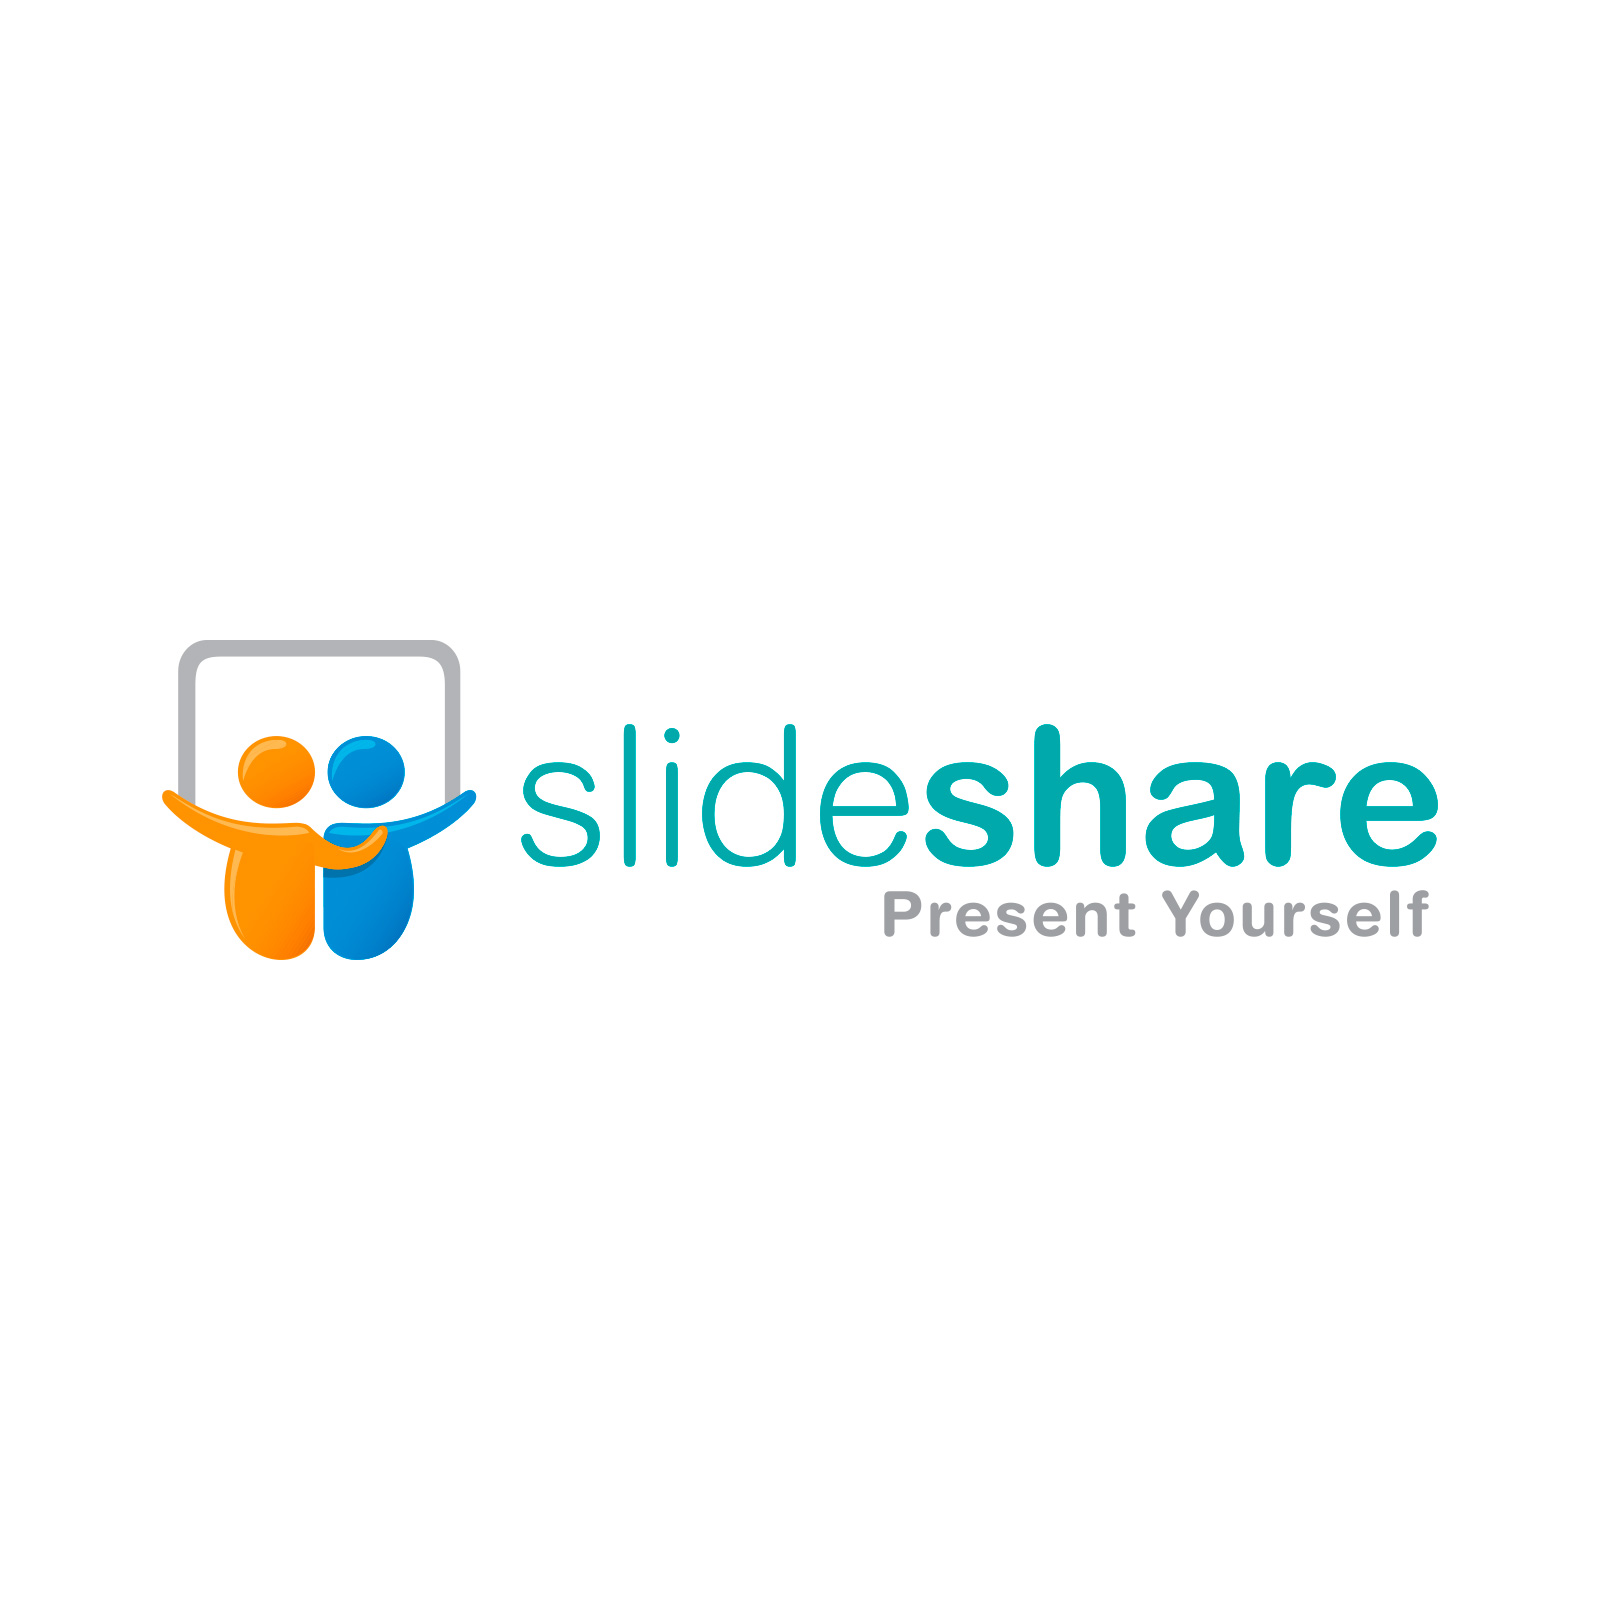 SlideShare is a hosting service for professional content including presentations, infographics, documents, and videos. Users can upload files privately or publicly in PowerPoint, Word, PDF, or OpenDocument format.